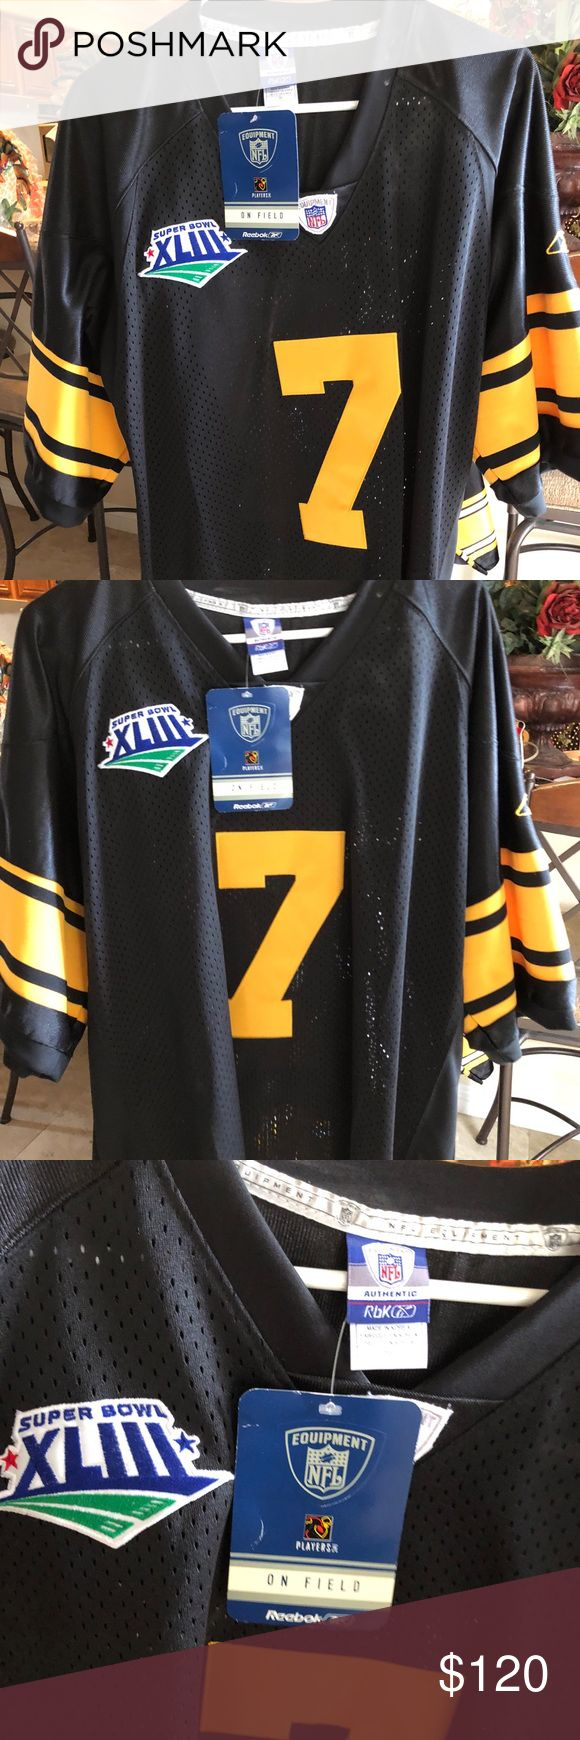 Big Ben Super Bowl 43 jersey Great condition never worn new with tags Reebok Other